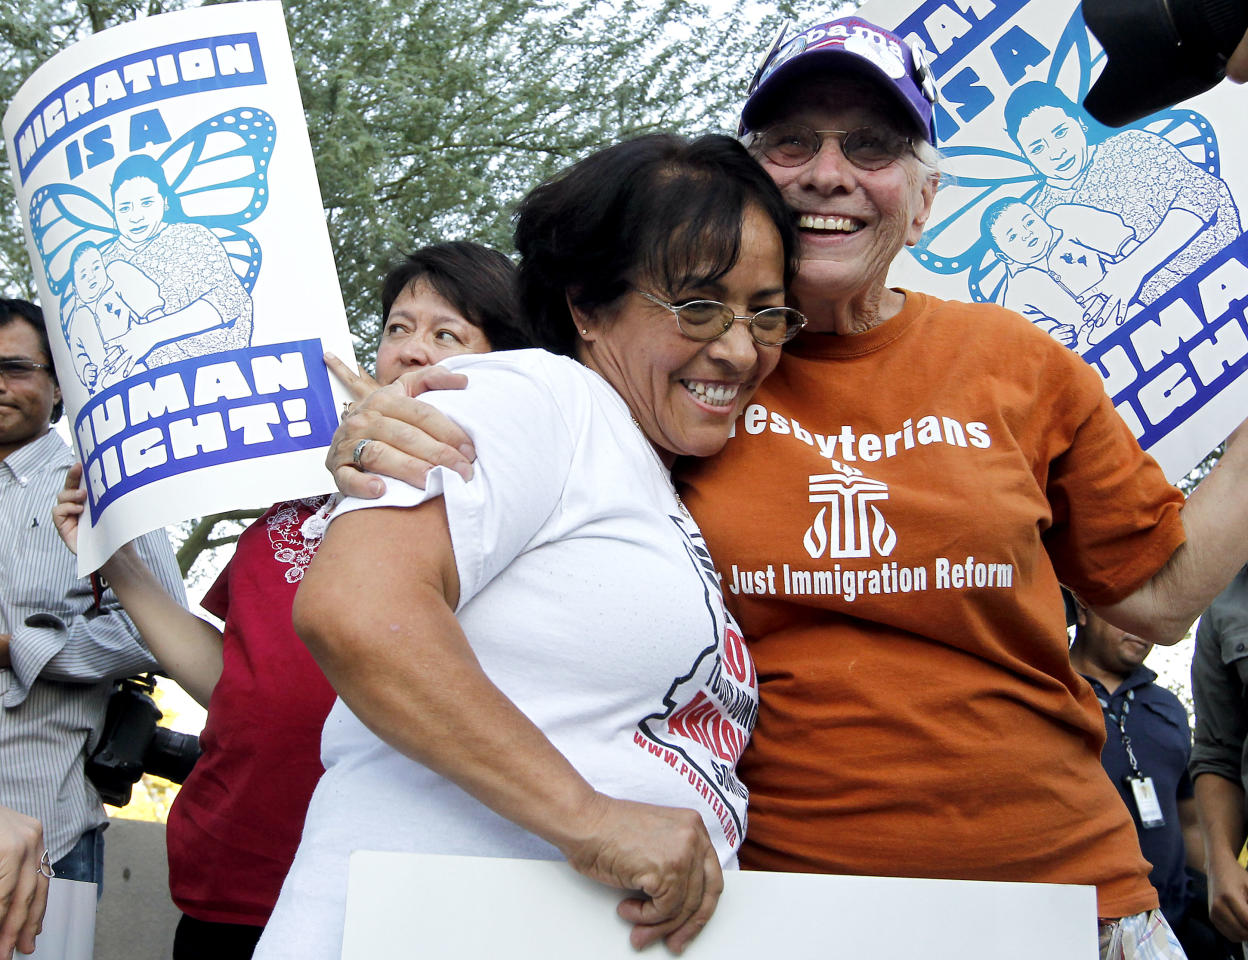 "Maria Jesus Rodriguez, left, gets a hug from Selena Keesecker, after Rodriguez spoke about her story as they join dozens who rally in front of U.S. Immigration and Customs Enforcement building, a day after a portion of Arizona's immigration law took effect, Wednesday, Sept. 19, 2012, in Phoenix. Civil rights activists contend will lead to systematic racial profiling, as the protesters chanted ""No papers, no fear."" (AP Photo/Ross D. Franklin)"